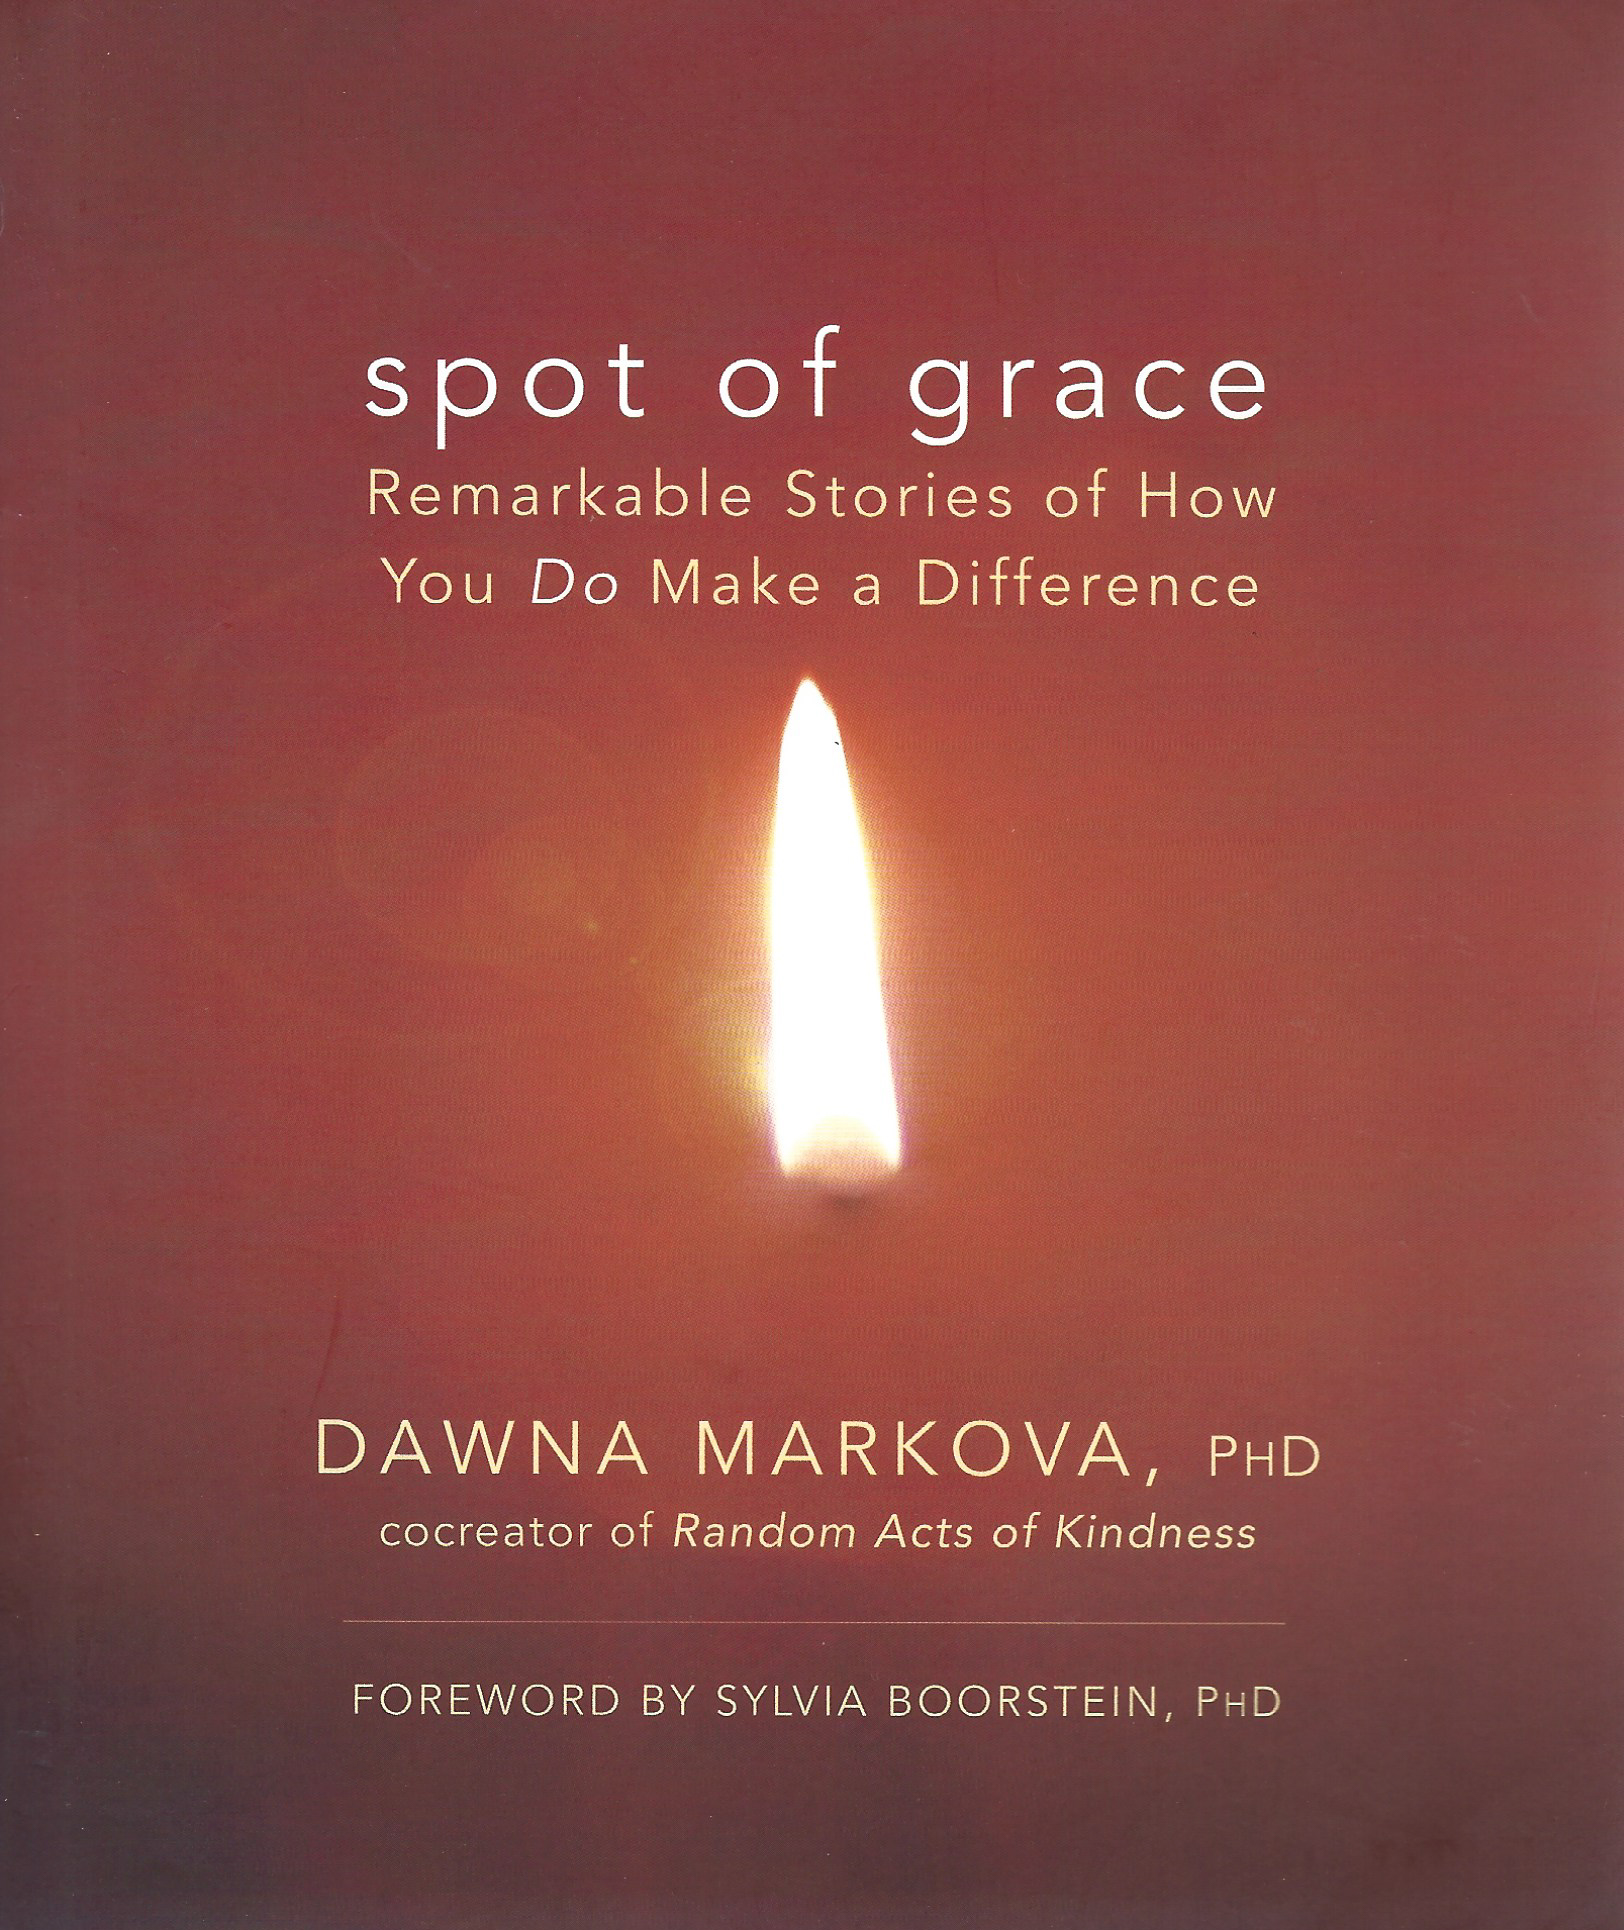 Spot of Grace | Dawna Markova, PhD